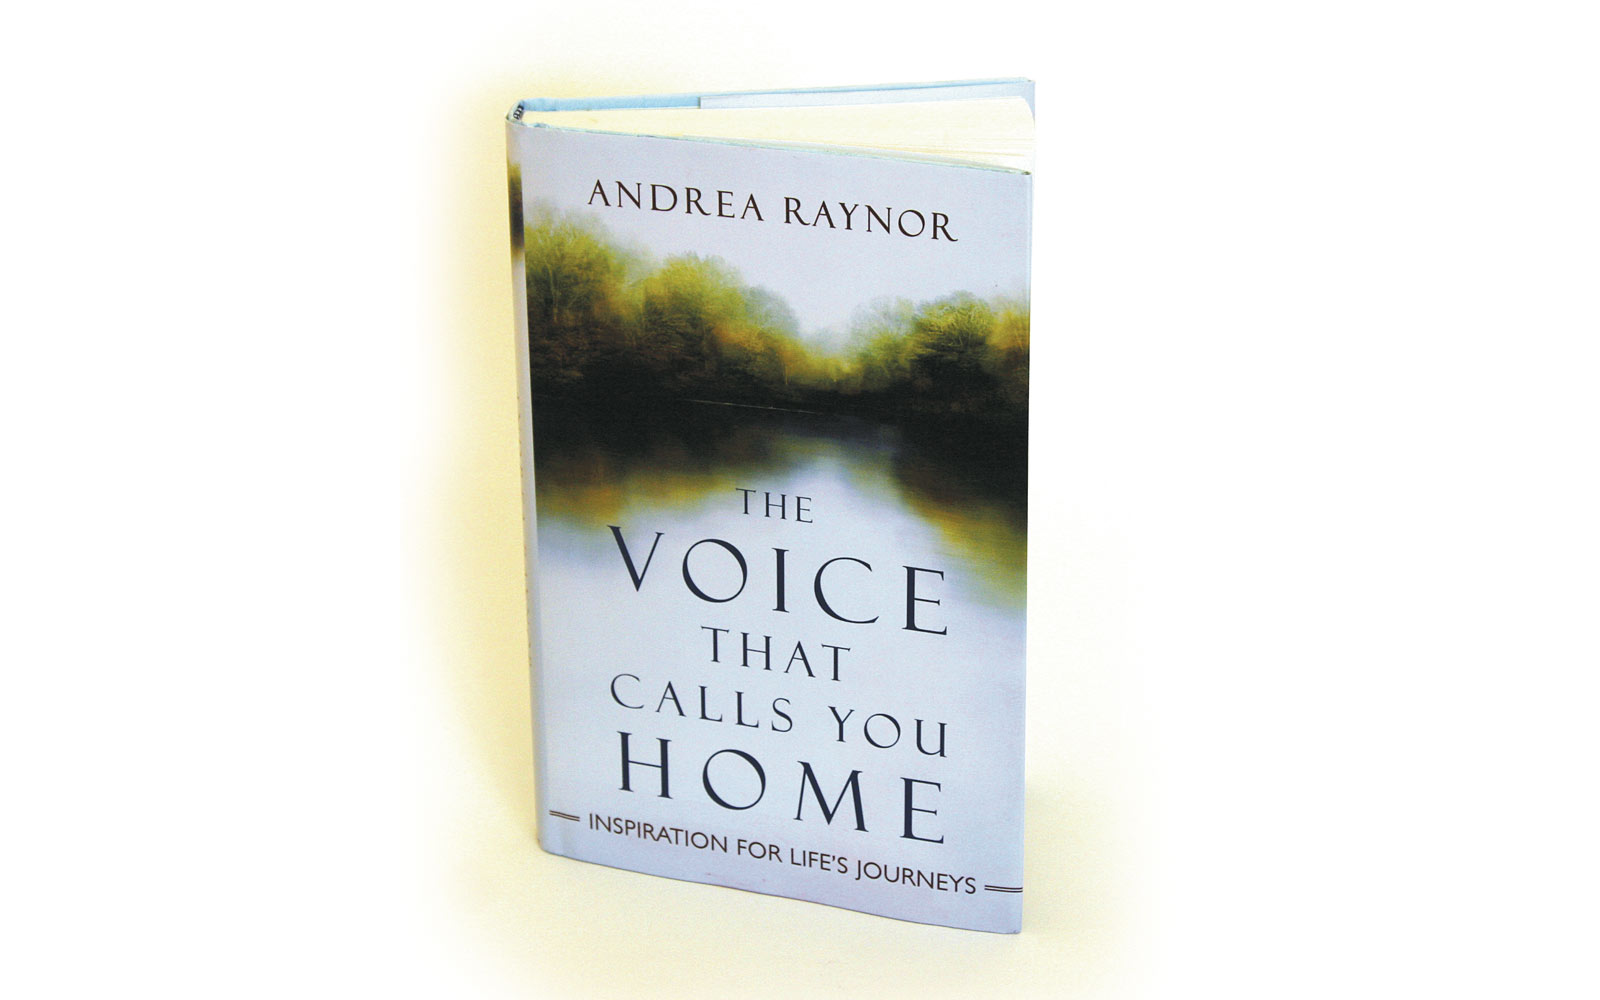 As Raynor and her editor, Peter Borland, worked to choose an artist to create the cover image for her new book, The Voice that Calls You Home, each separately came in contact with artist and Raynor's fellow classmate Peter …